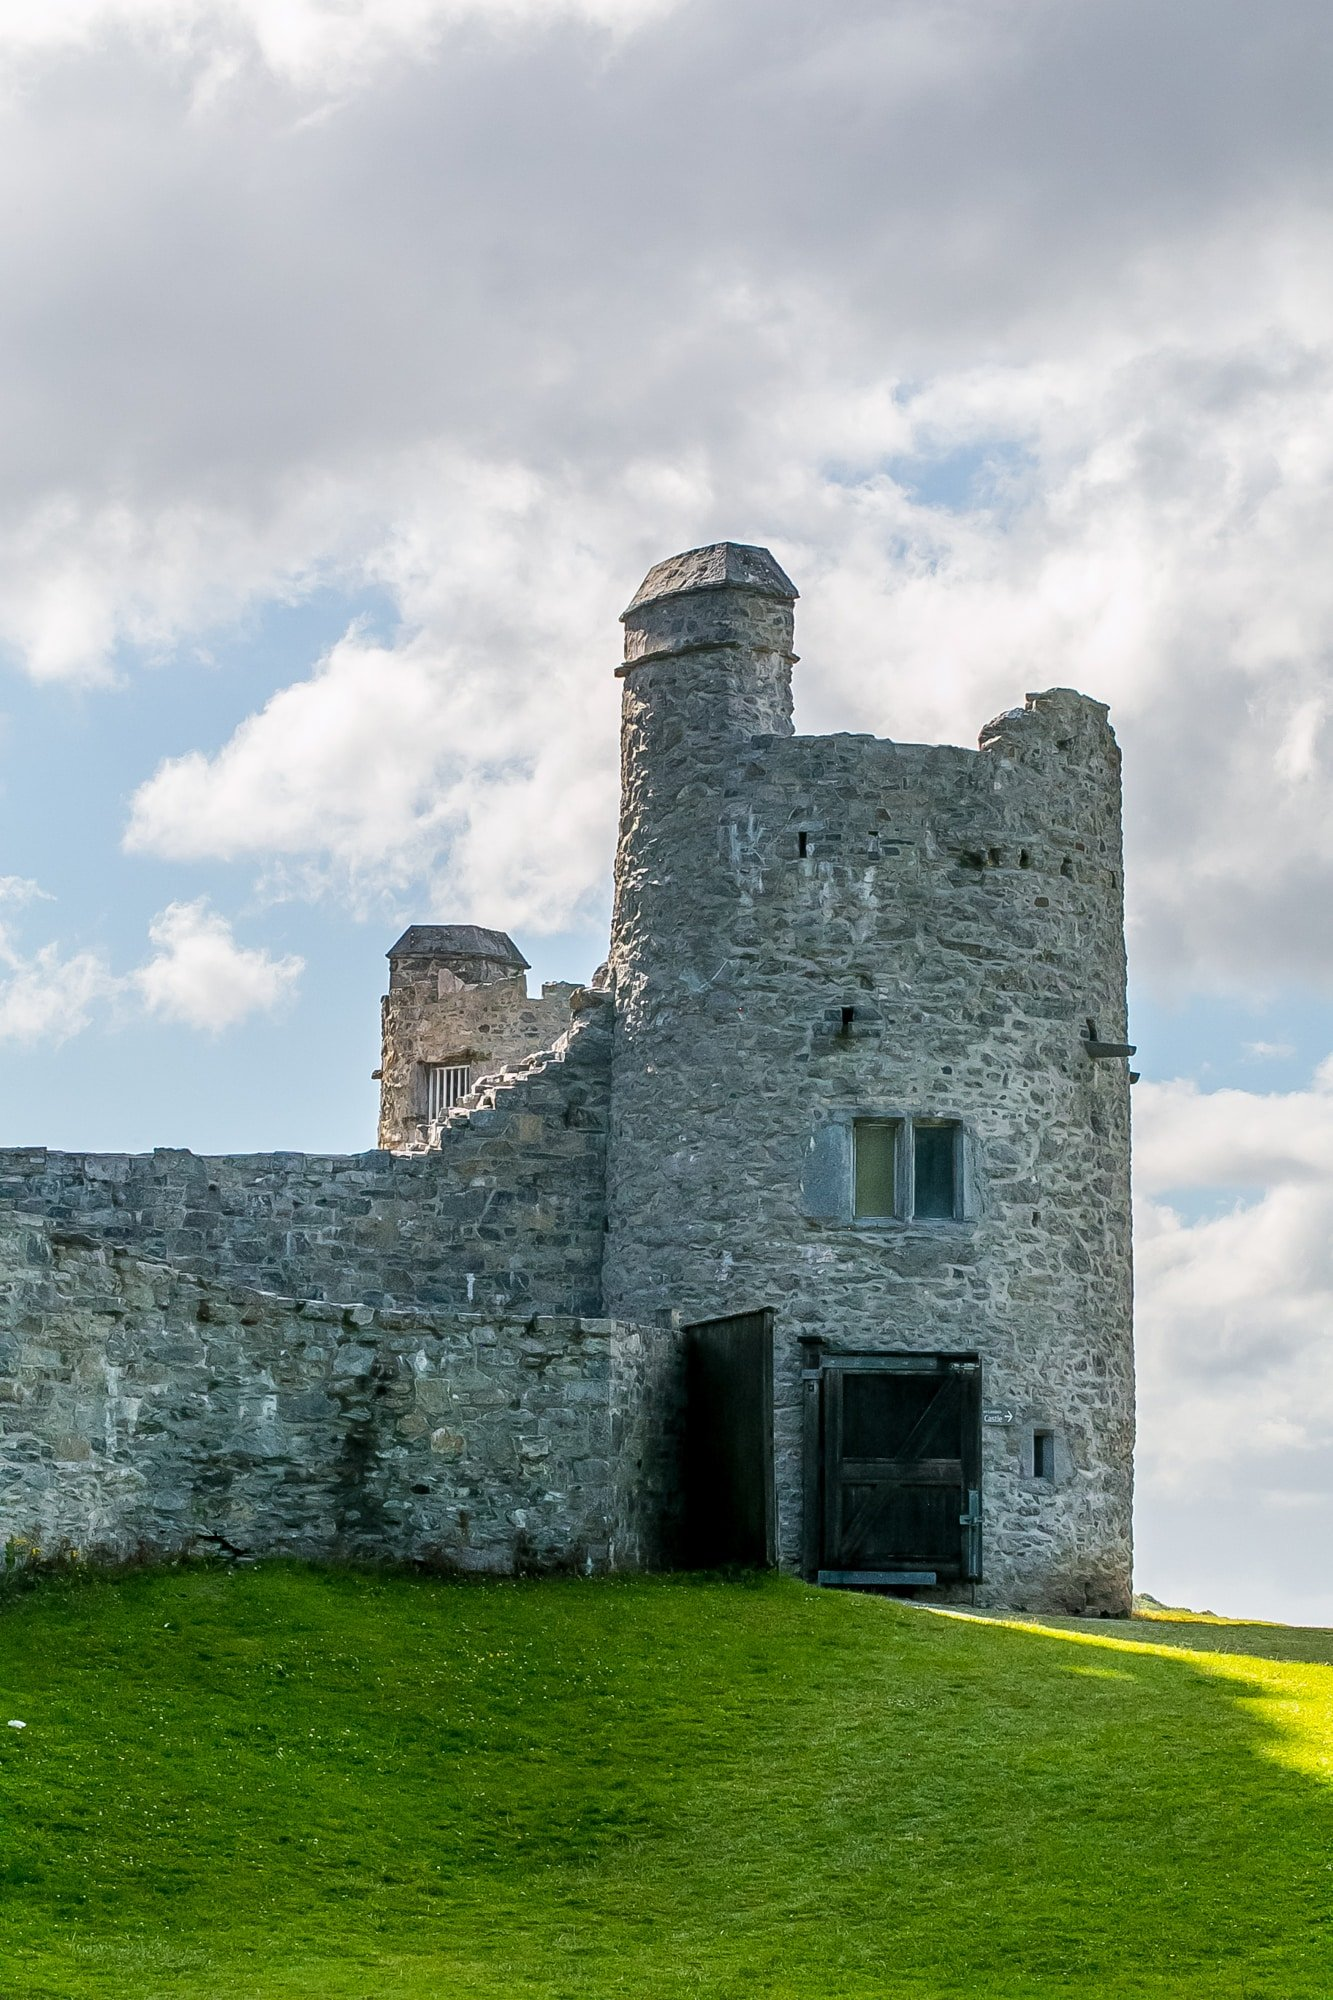 Ross castle turret, Killarney